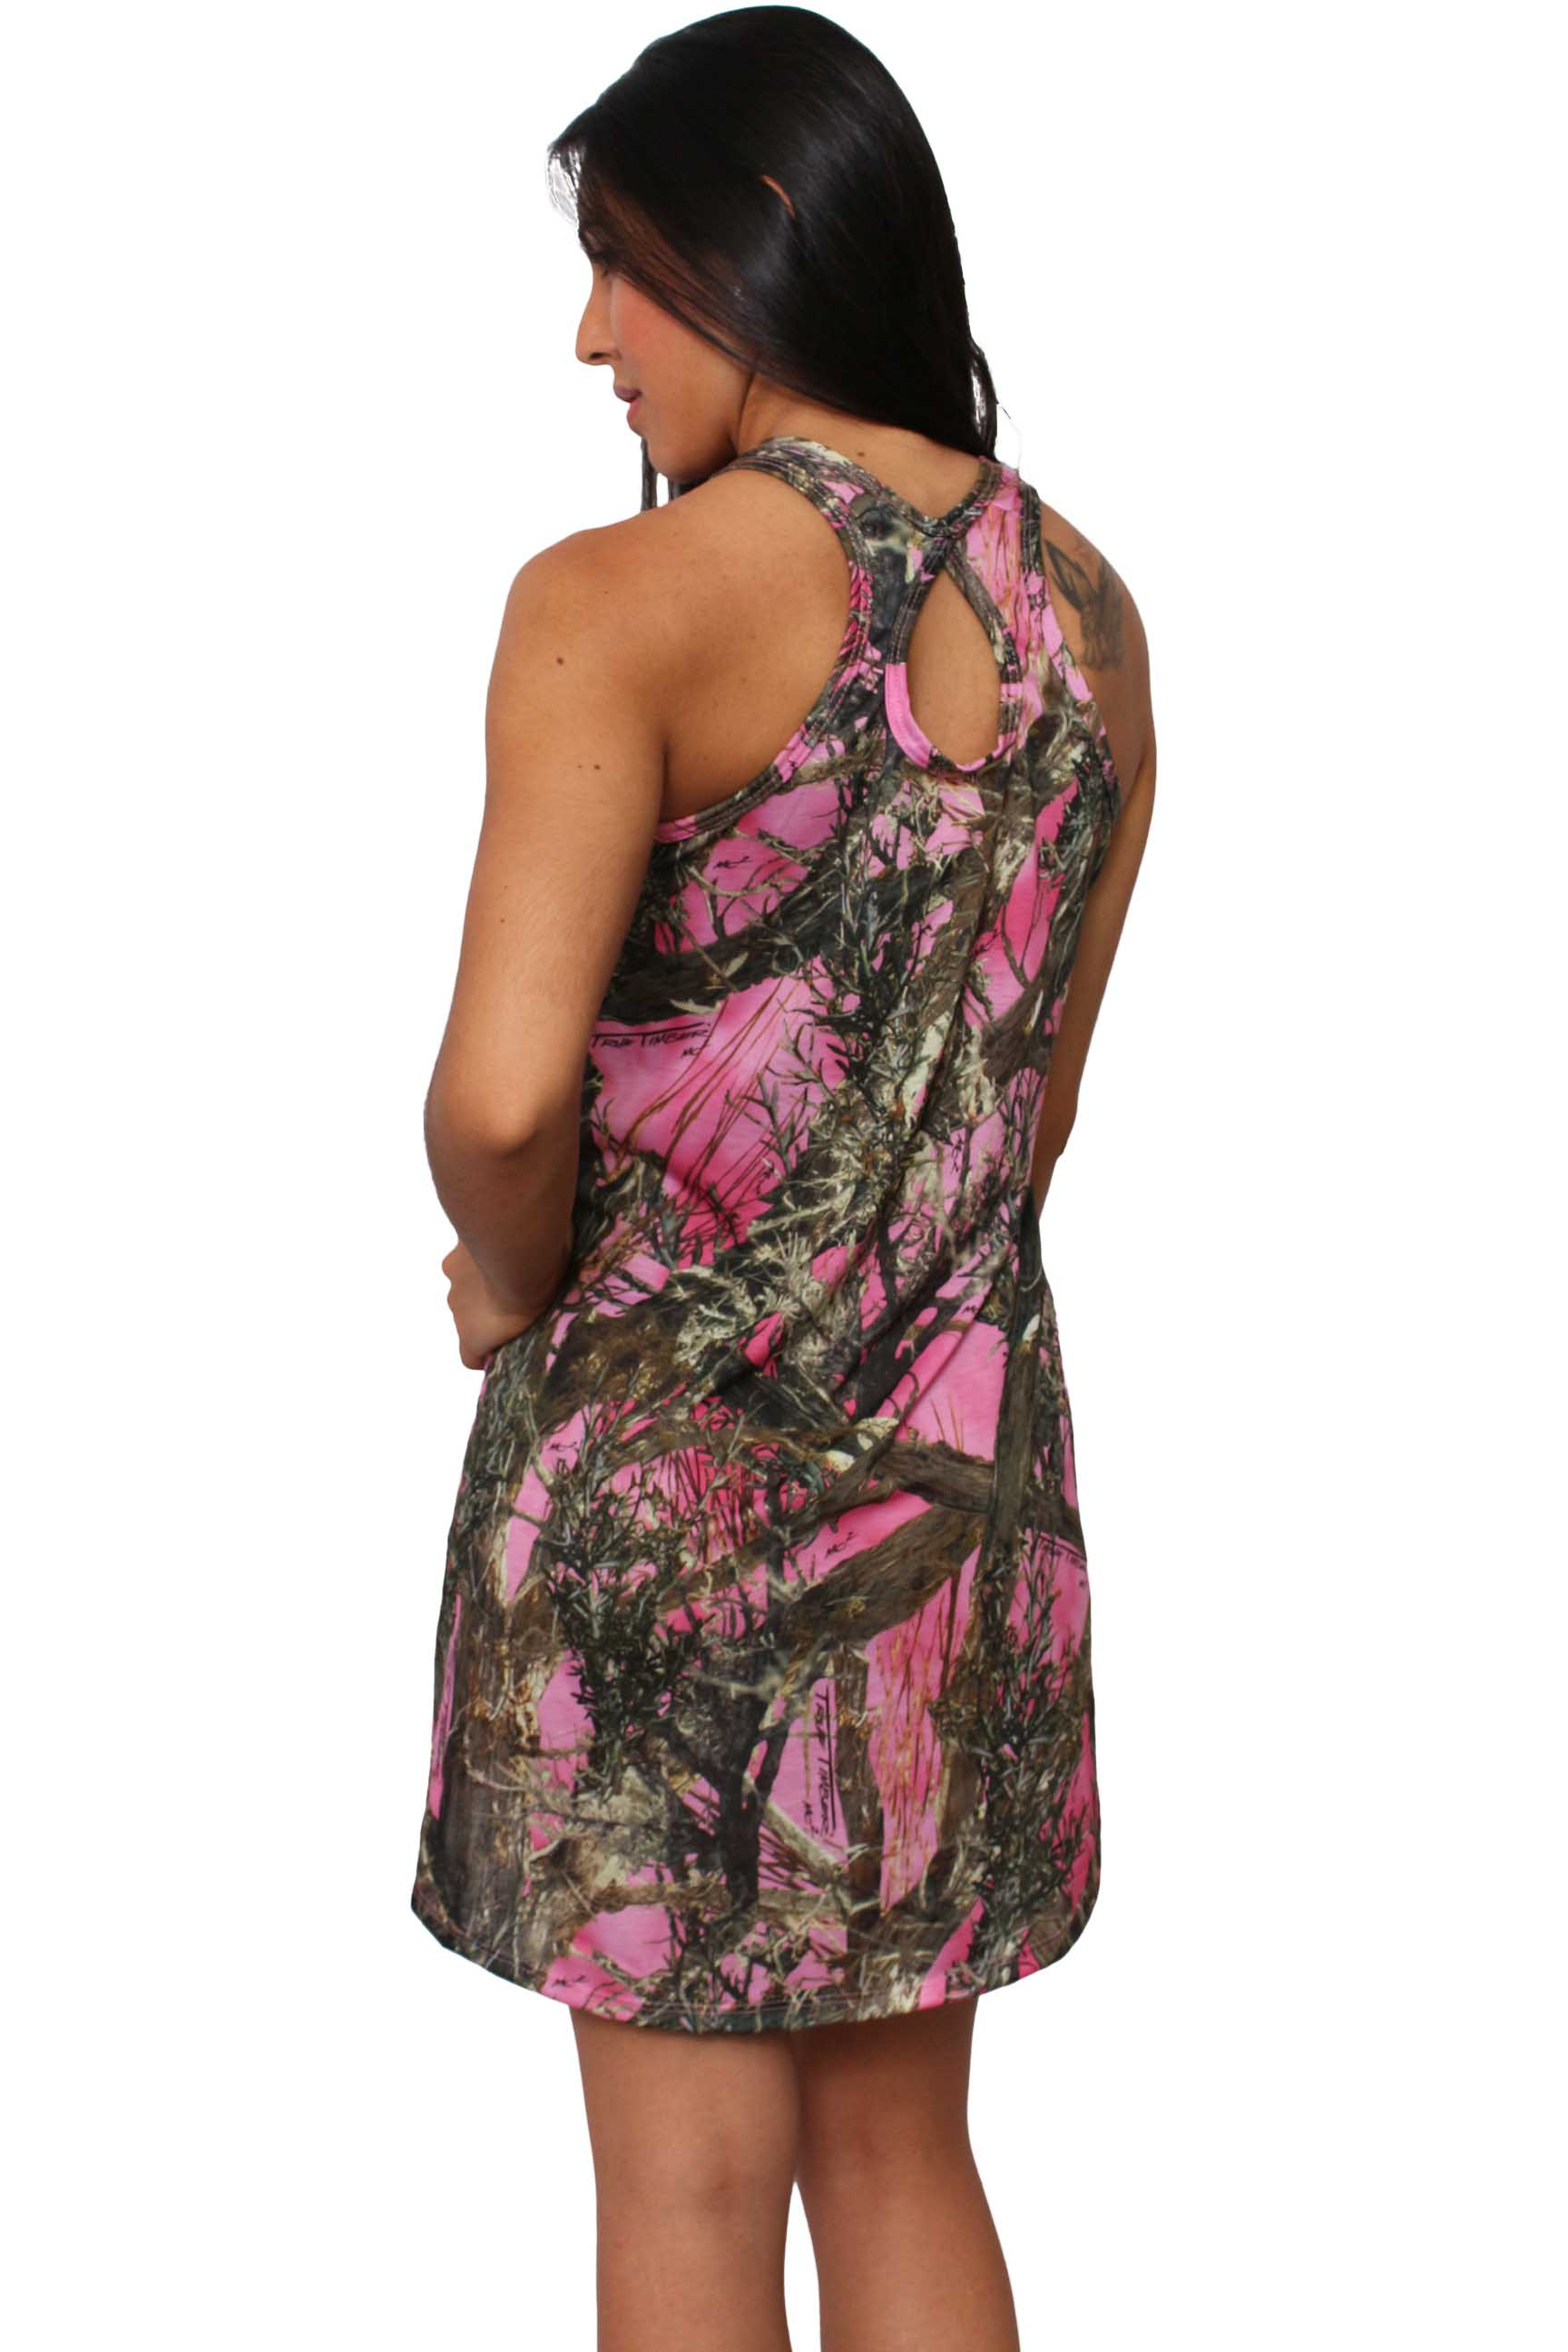 Womens Clothing and Accessories () Apply Womens Clothing and Accessories filter ; Camo Gifts (52) Women's Pink Camouflage. Our collection of pink camo is unmatched. We have pink camo in every category. From stemware to curtains to bedding to ladies apparel, purses and more! All of our pink camo items are designed with you in mind.